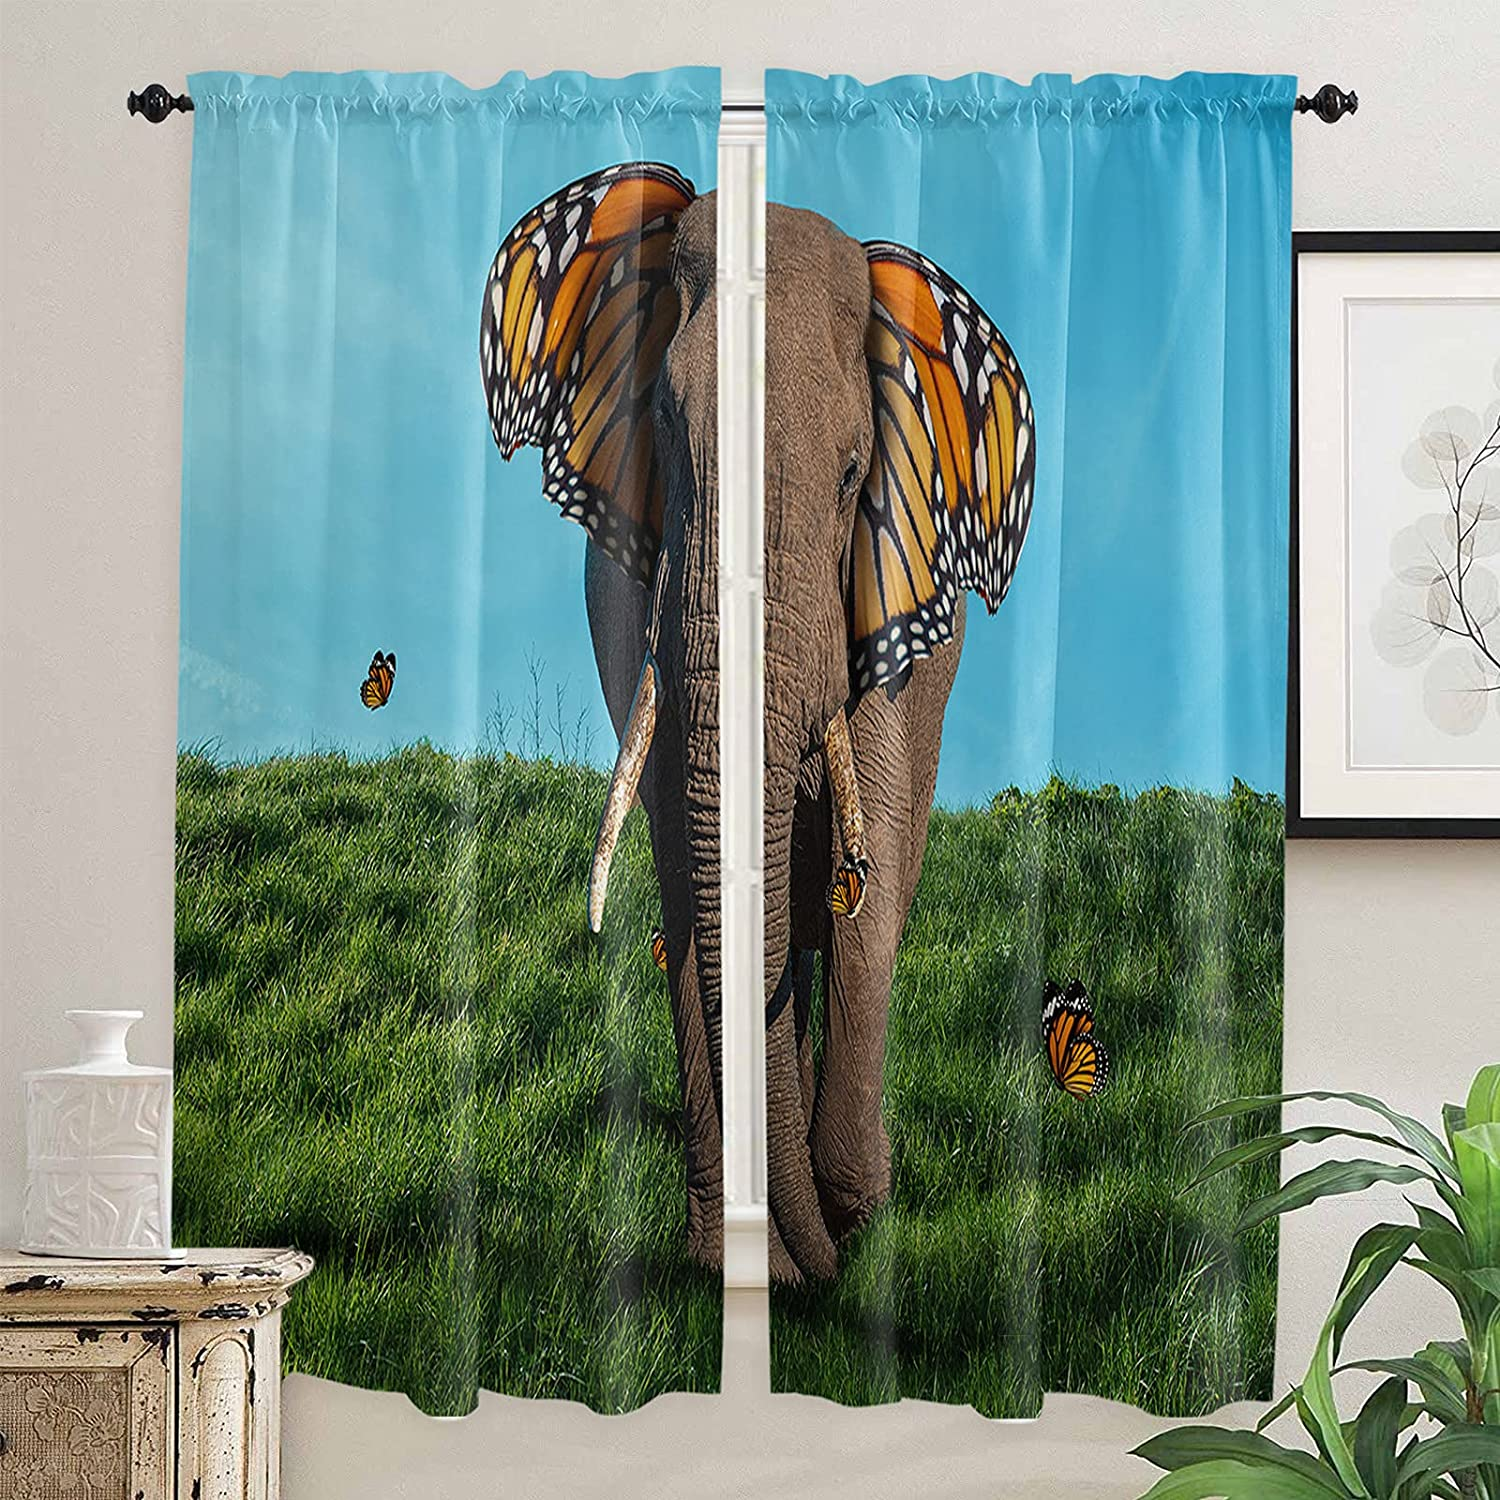 Natural Grassland Kitchen Curtains 72 F Translated Windows Length Inch for Cash special price